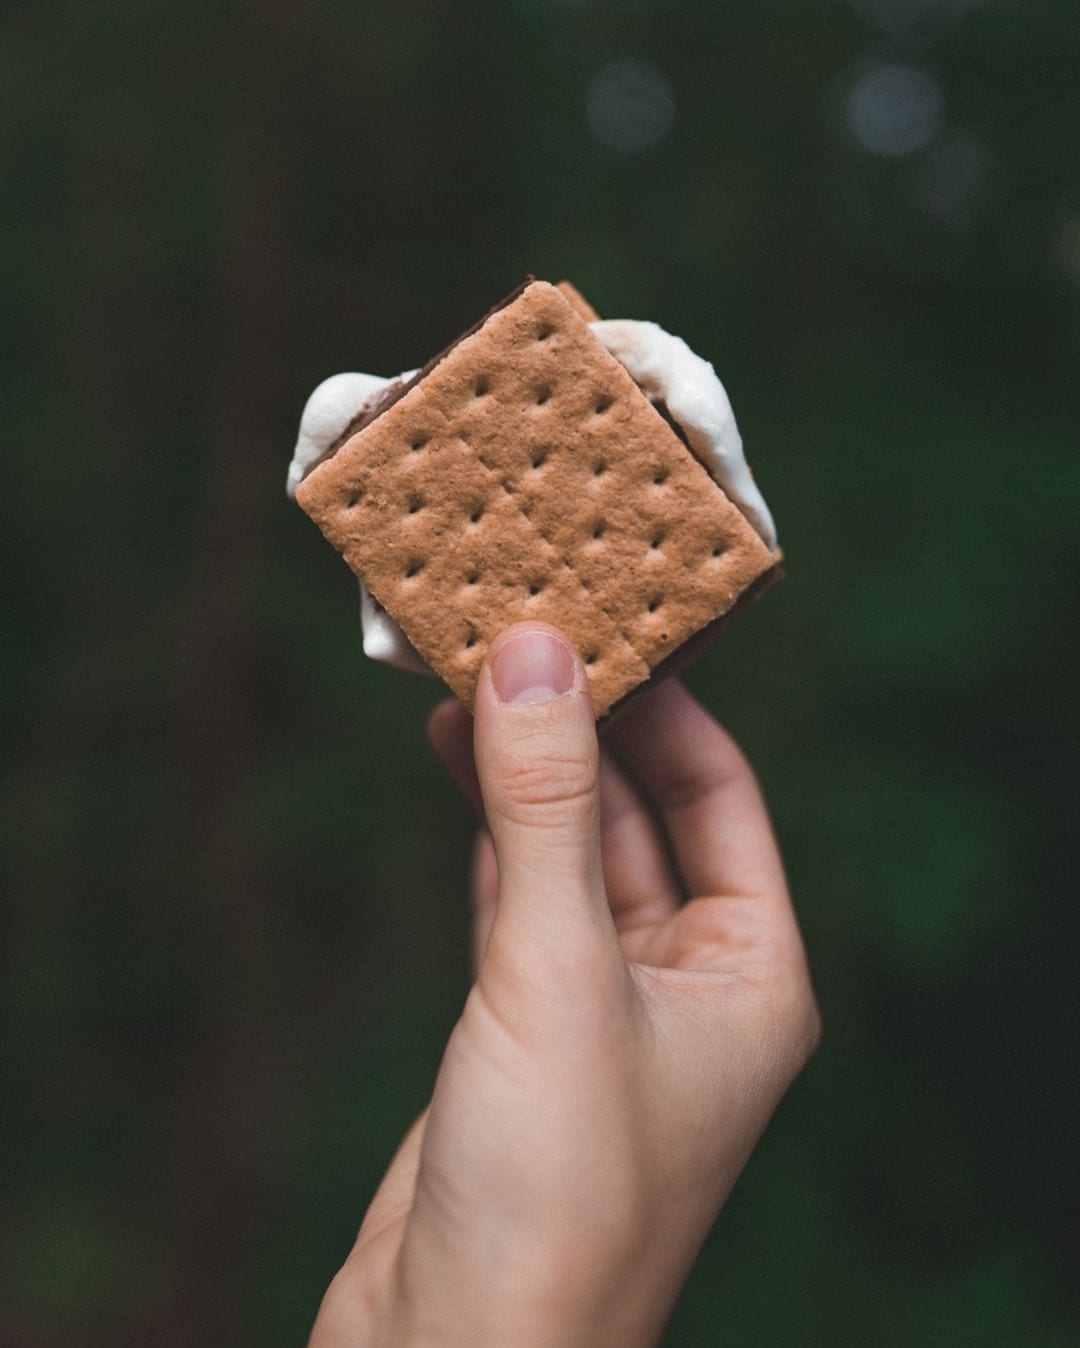 Come cozy up by our fire pit and enjoy our SMORE'Z Happy Hour from 5pm to 6pm! Bite into crisp graham crackers, decadent chocolate and perfectly roasted marshmallow. Donations accepted – supporting @GKTWVillage #smores #hotelzephyr #tastytuesday